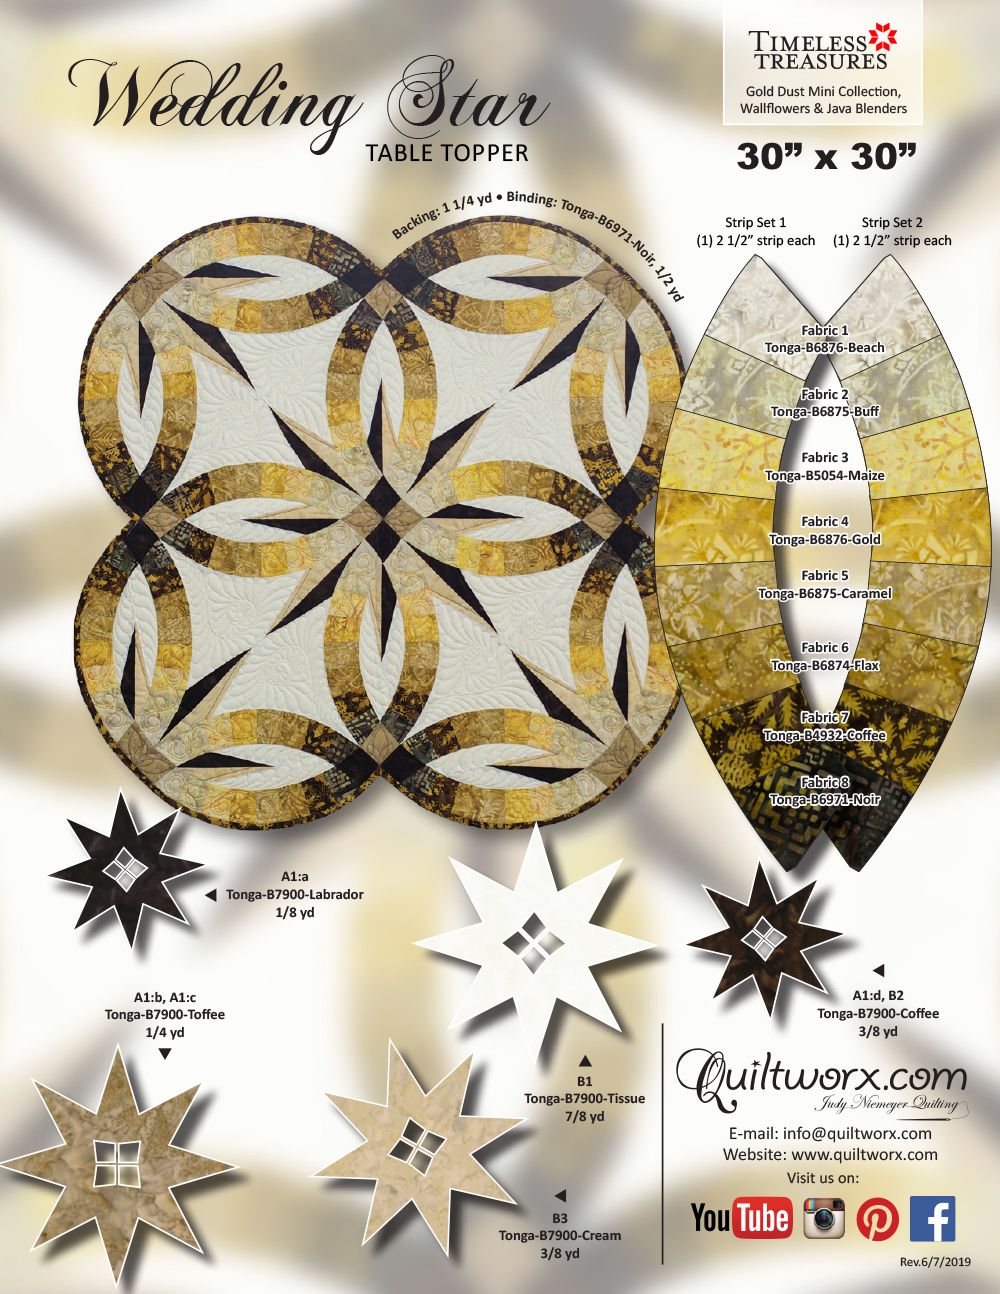 Wedding-Star-TT-Gold-Dust-1pg-KS